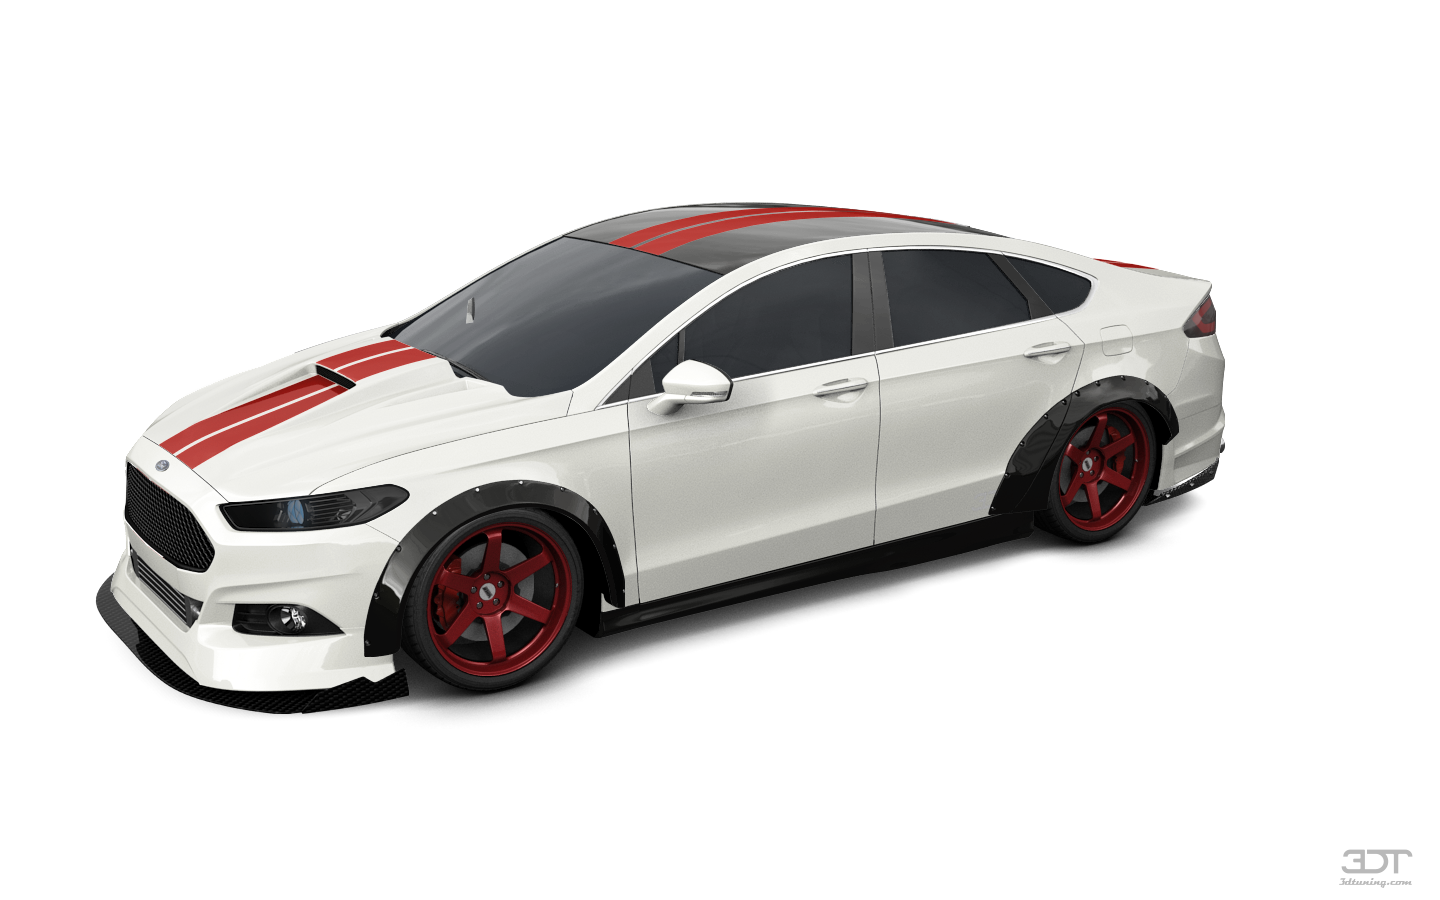 Ford Mondeo 4 Door Saloon 2015 tuning